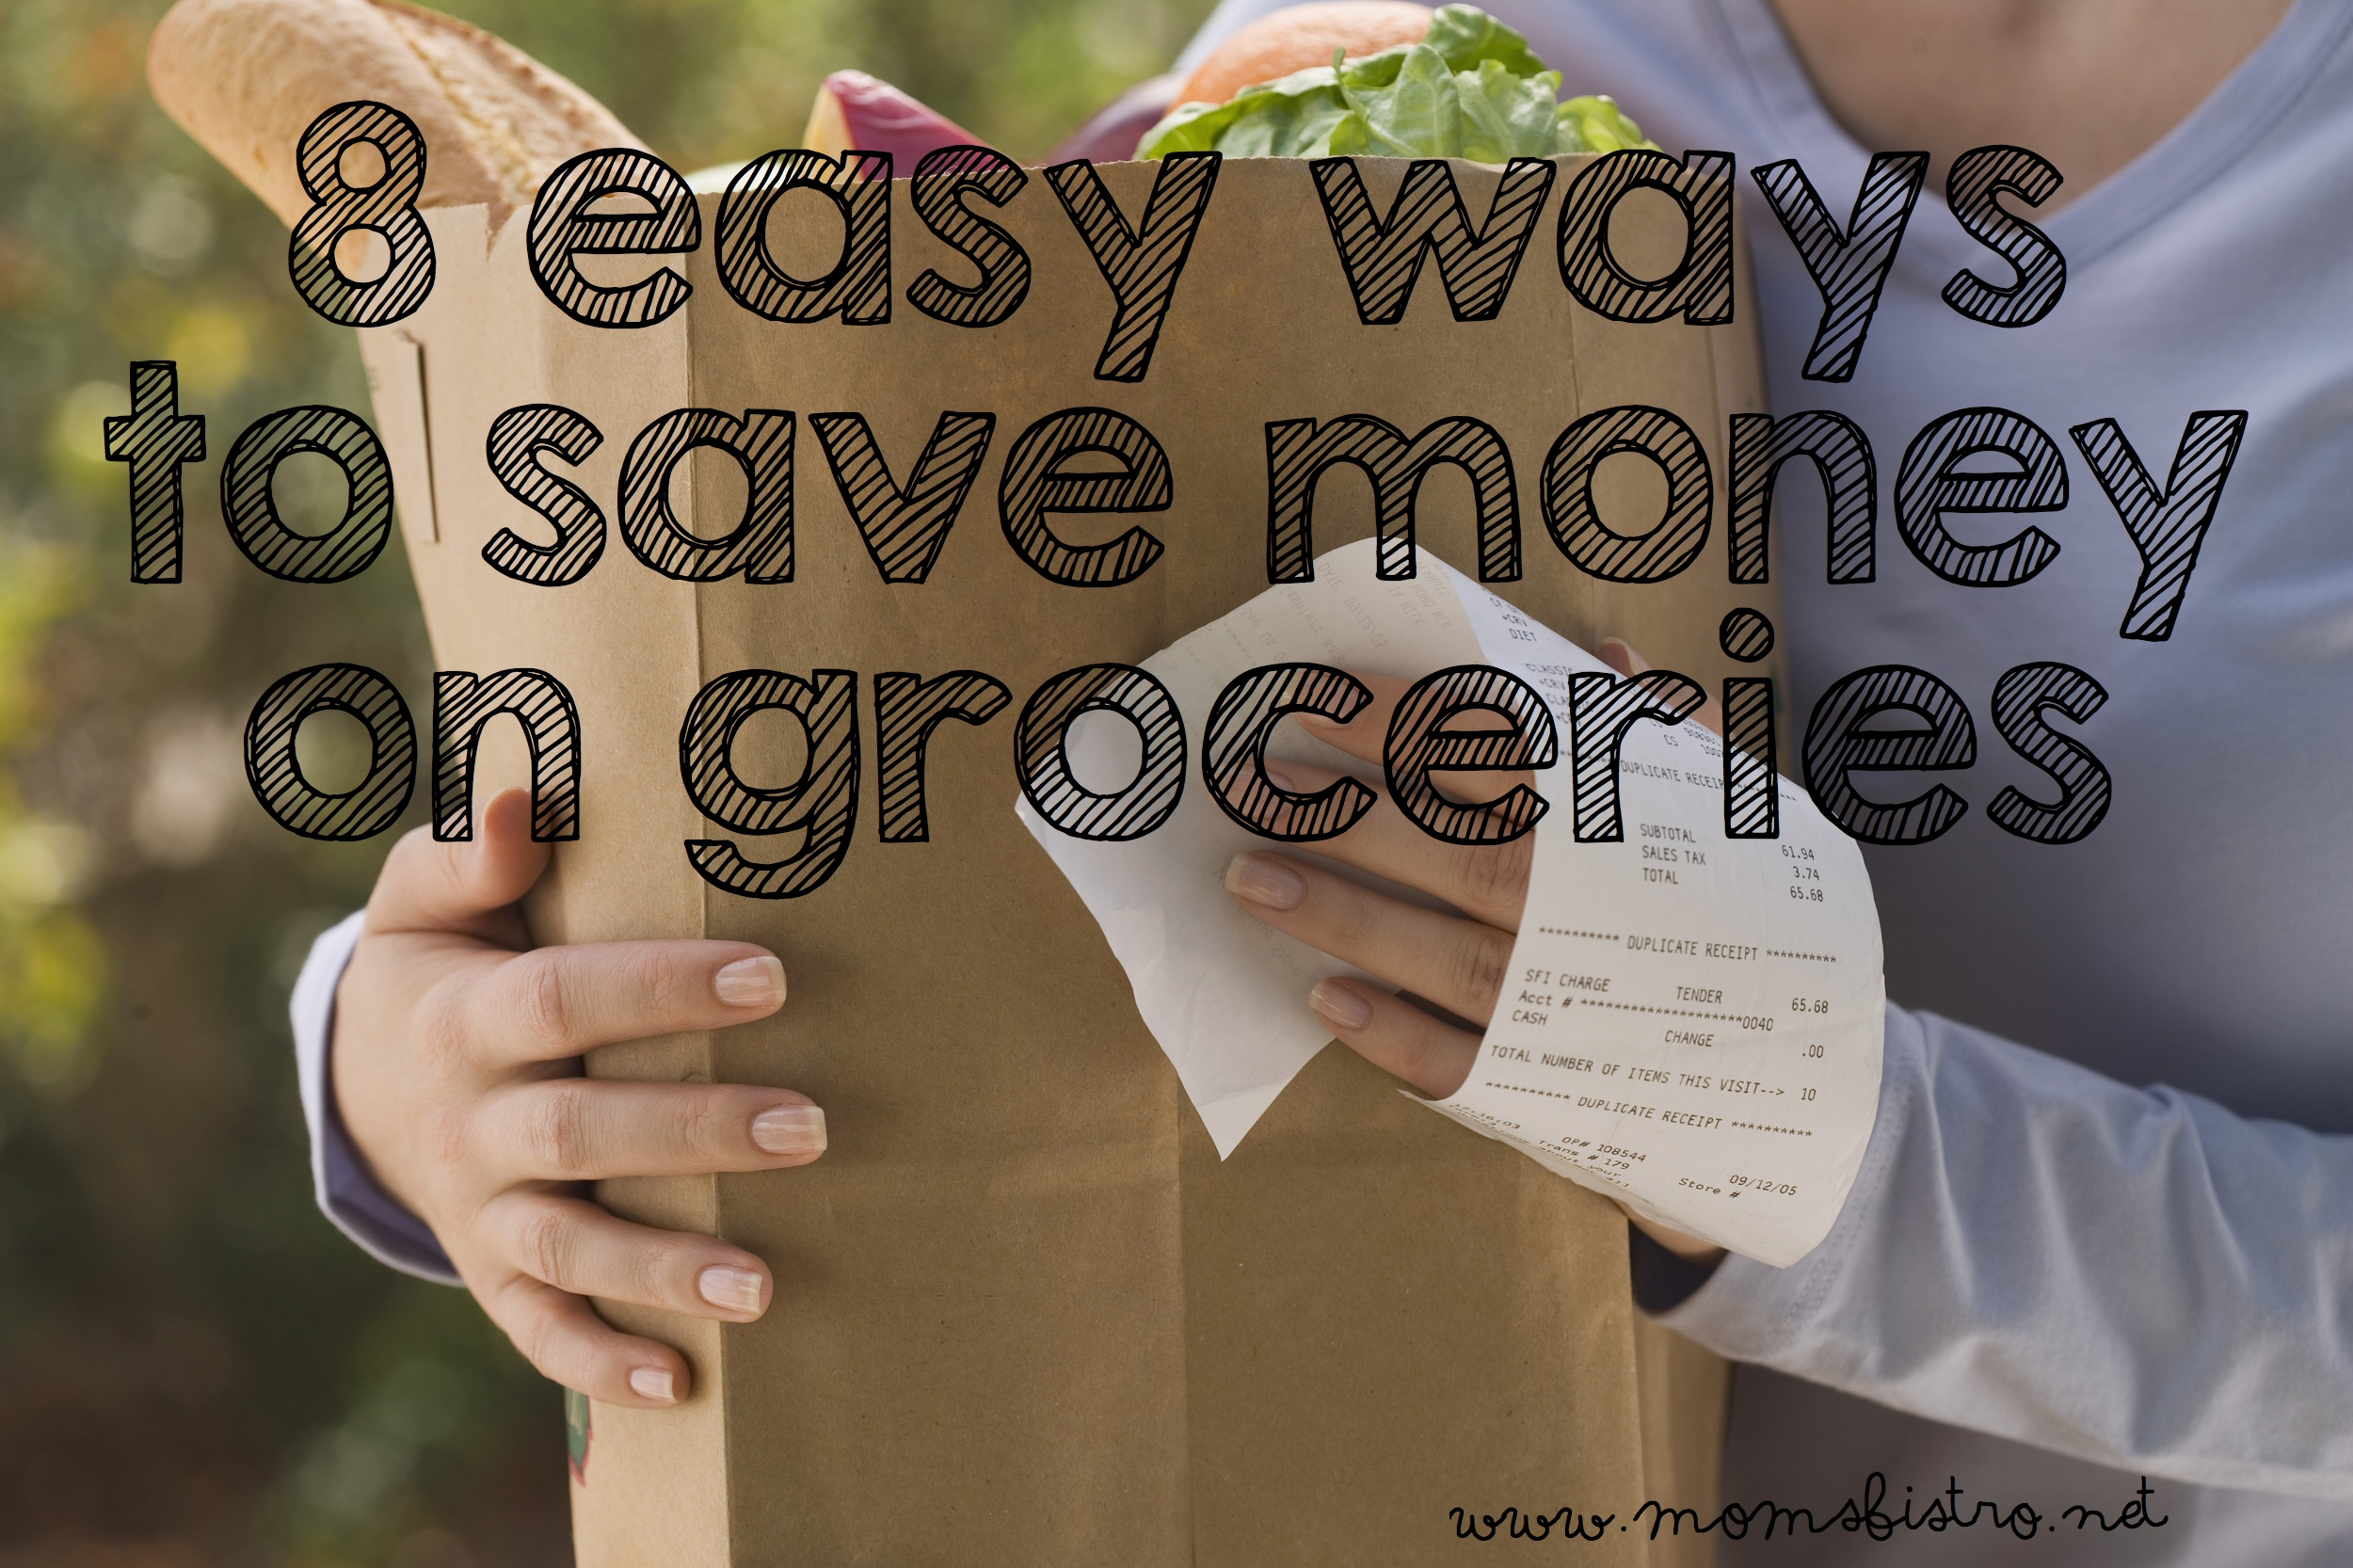 8 Easy Ways To Save Money On Groceries | Mom's Bistro